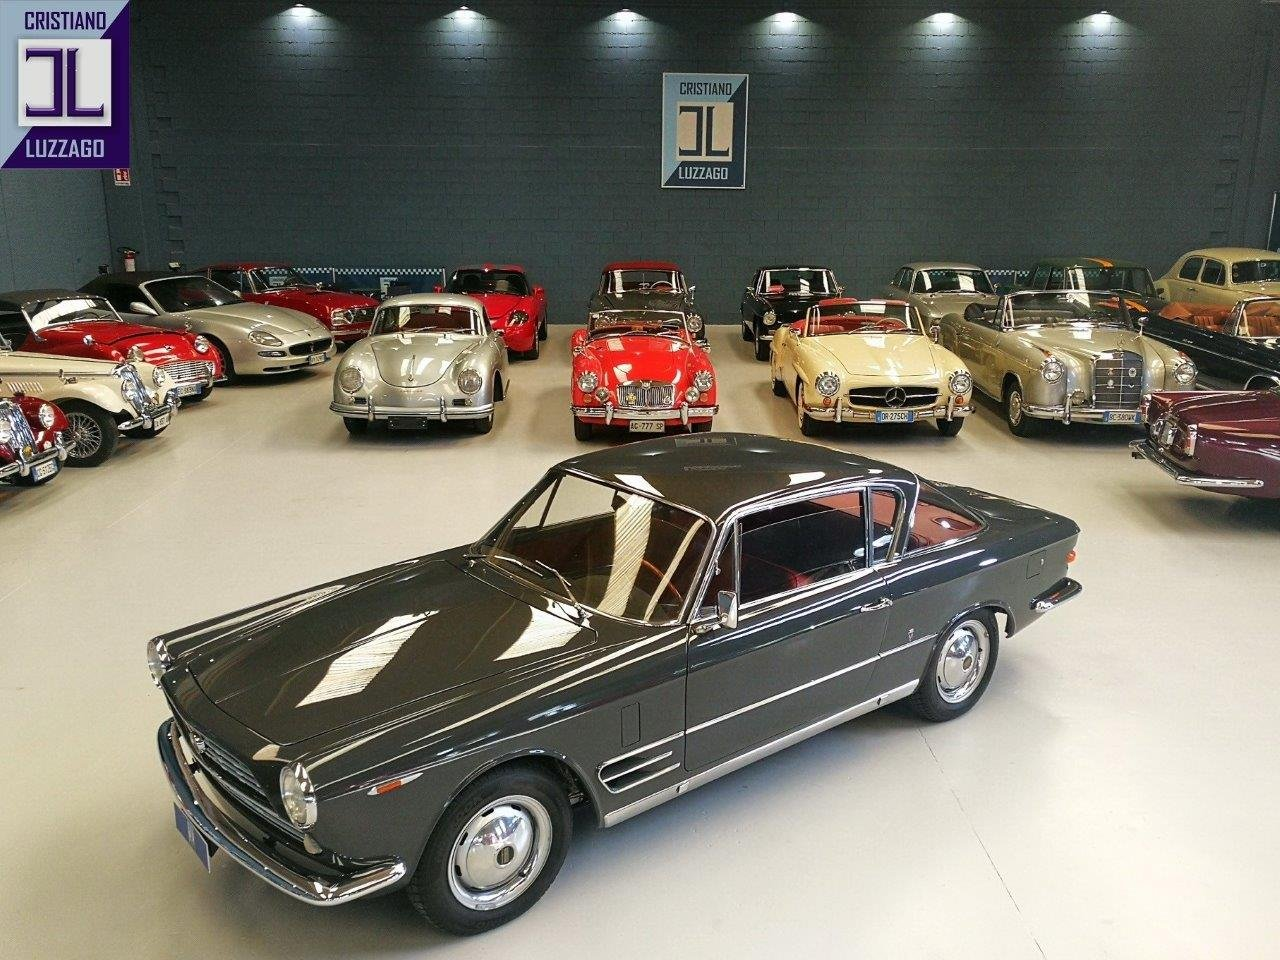 1967 FIAT 2300 S COUPE Recently restored For Sale (picture 1 of 6)